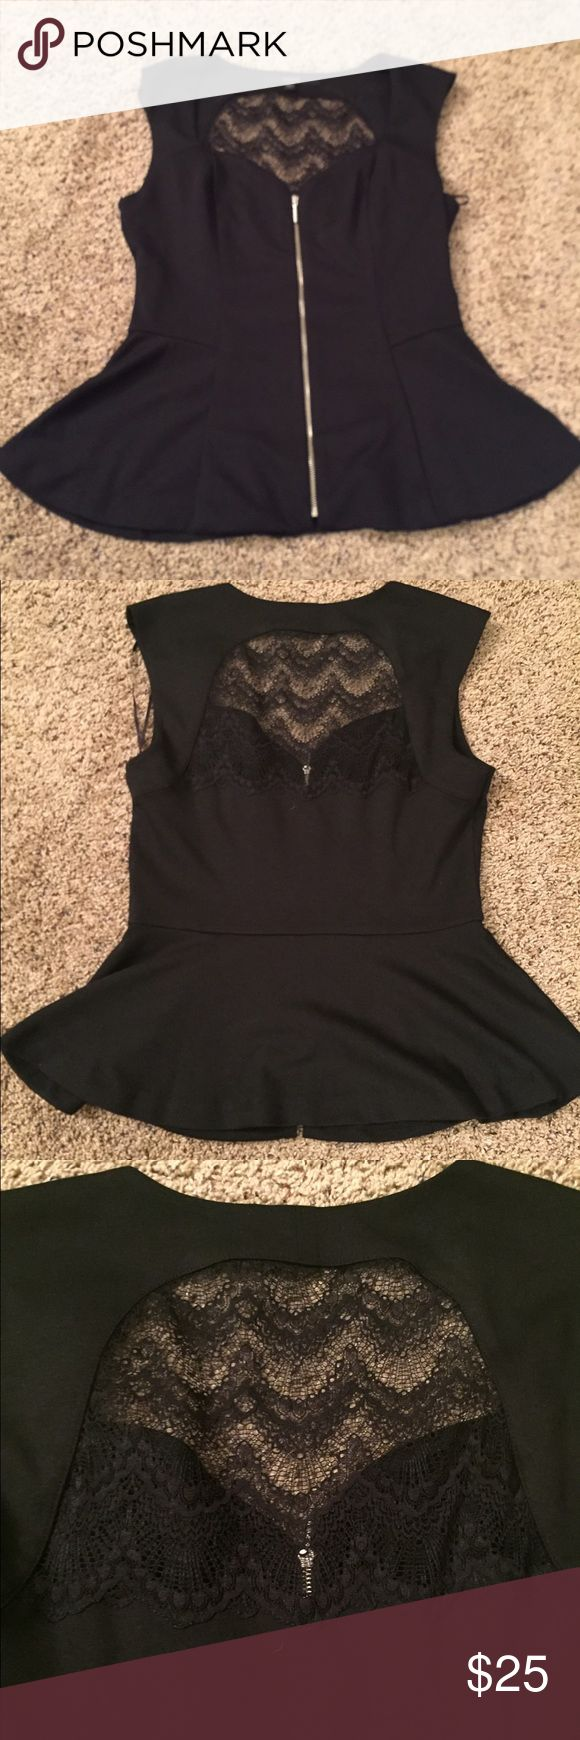 Lace peplum top The zipper front detail and lace back of this peplum top gives this top the perfect rocker chic look. I love this top, but sadly don't have the right body for the shape. Only worn once, maybe. Don't miss out on this one! Guess Tops Blouses